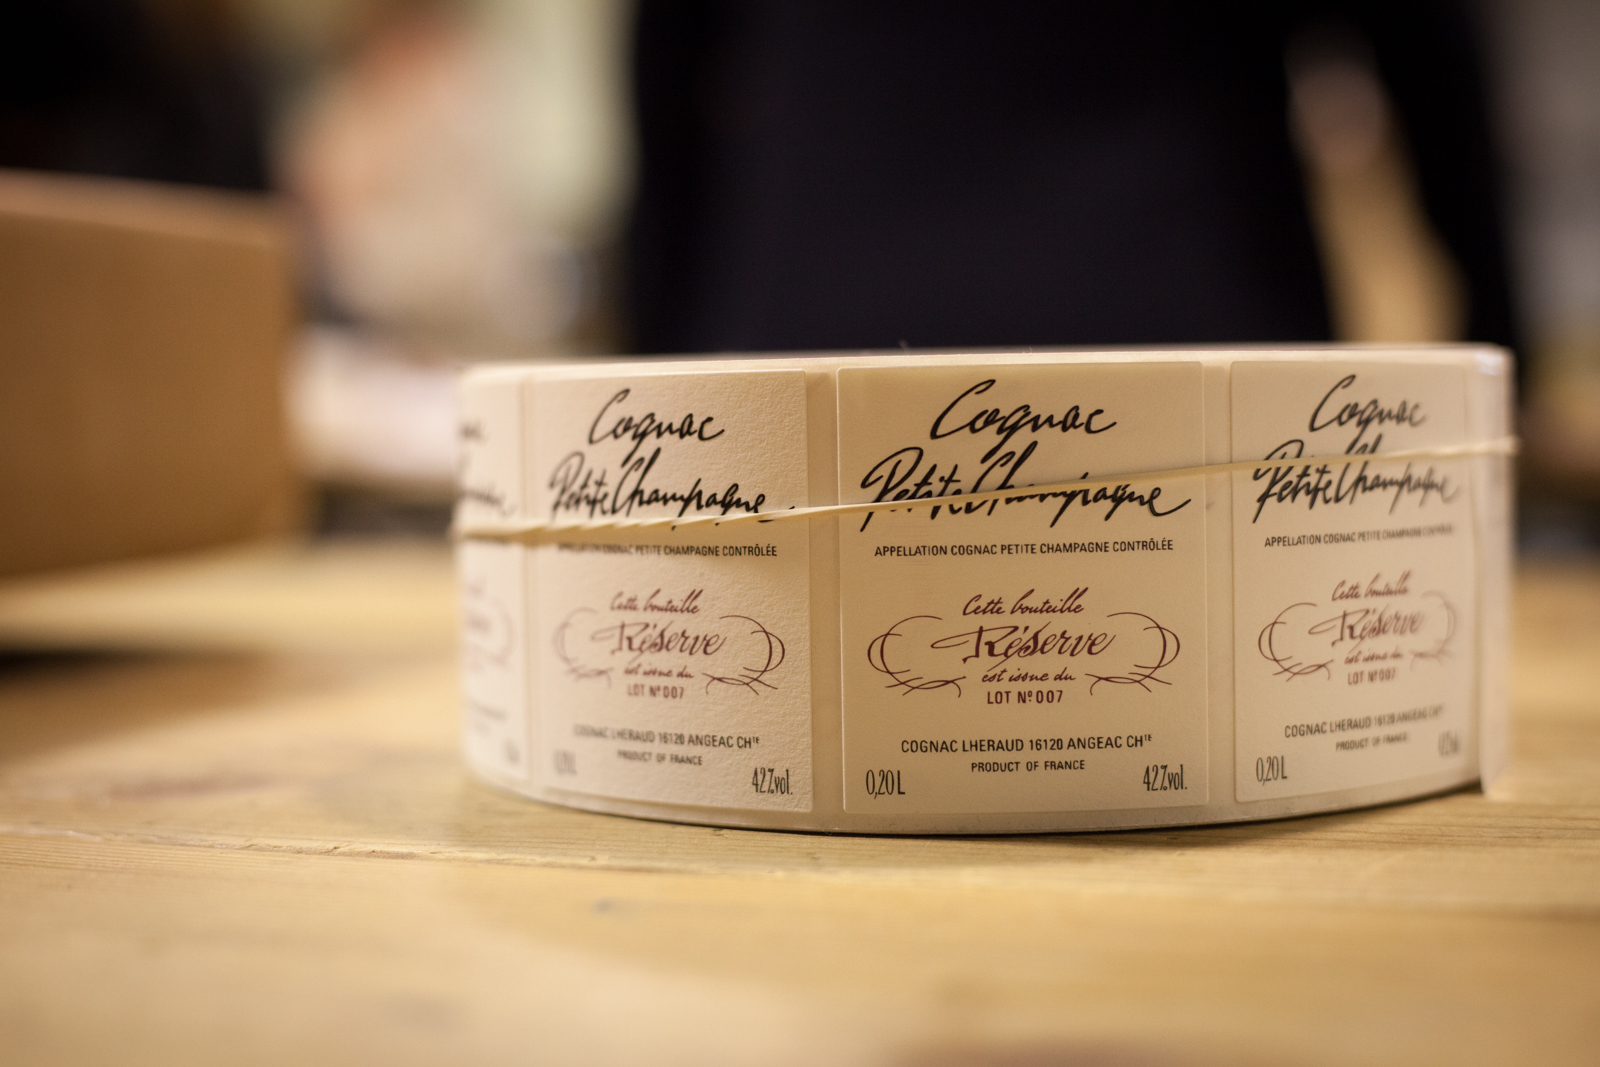 Labels for Cognac Petit Champagne at Cognac Lhéraud. ©Kevin Day/Opening a Bottle